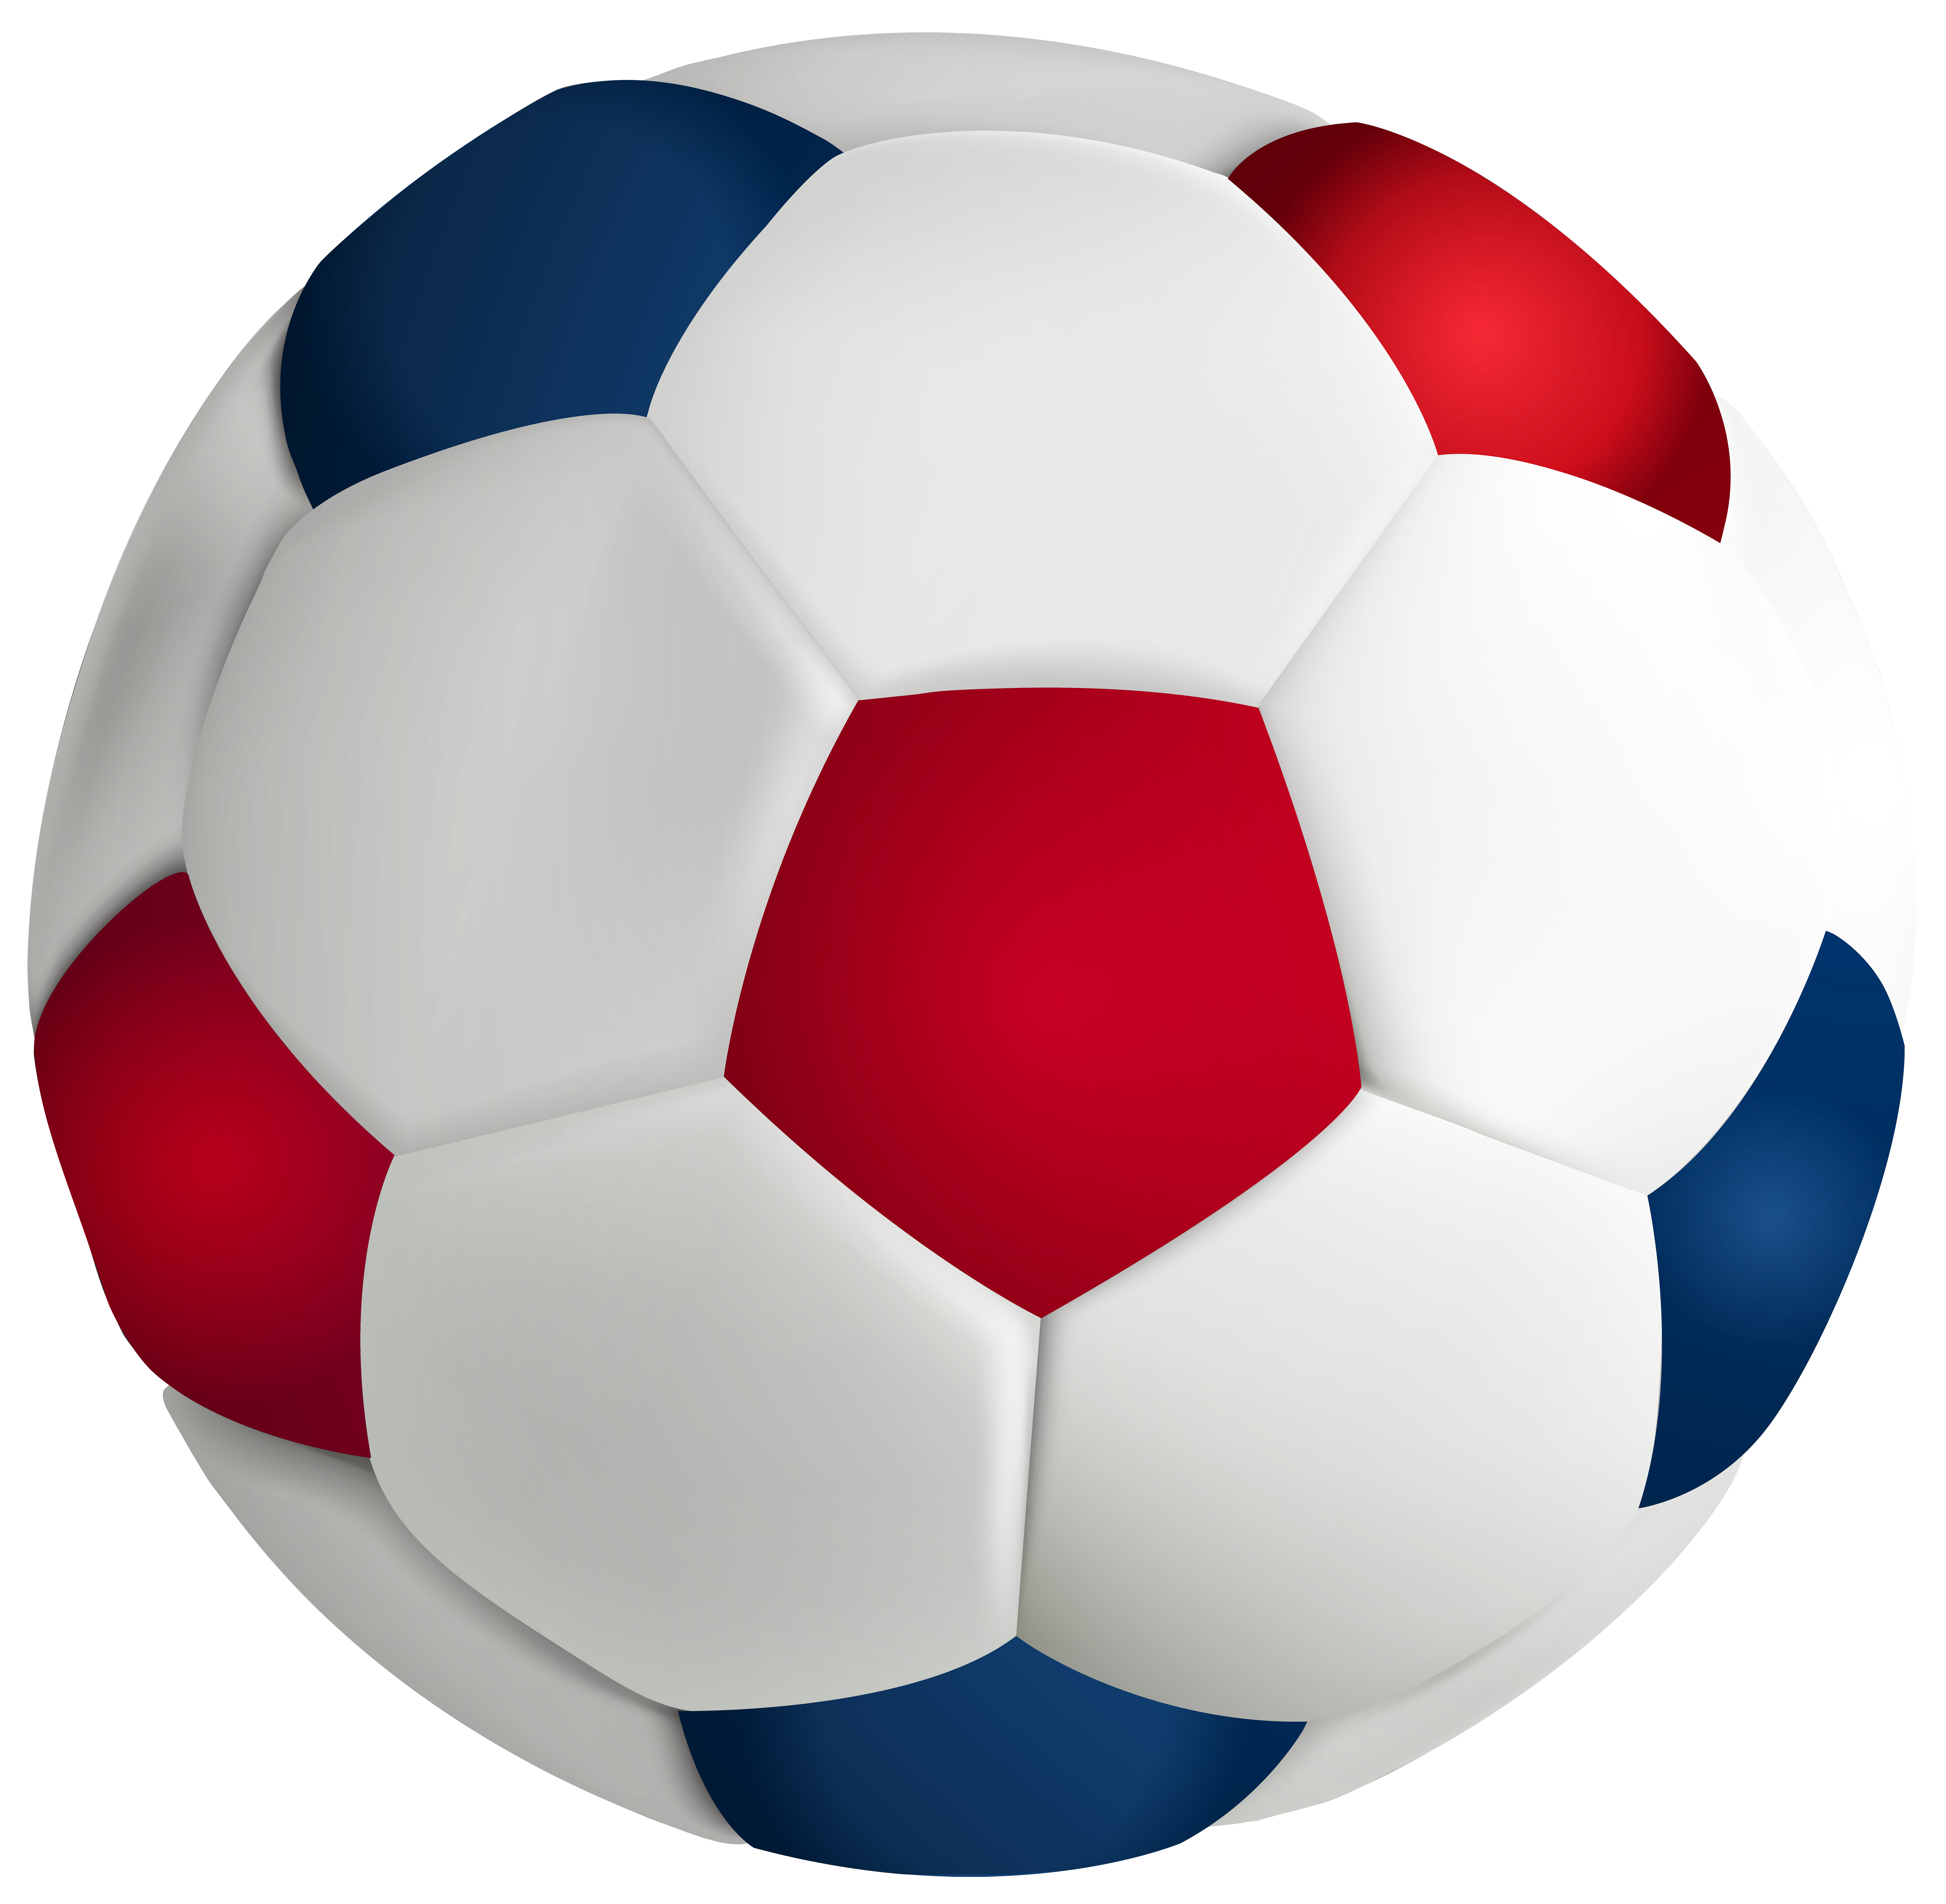 Football 2016 clipart vector download Euro 2016 France Ball PNG Transparent Clip Art Image | Gallery ... vector download